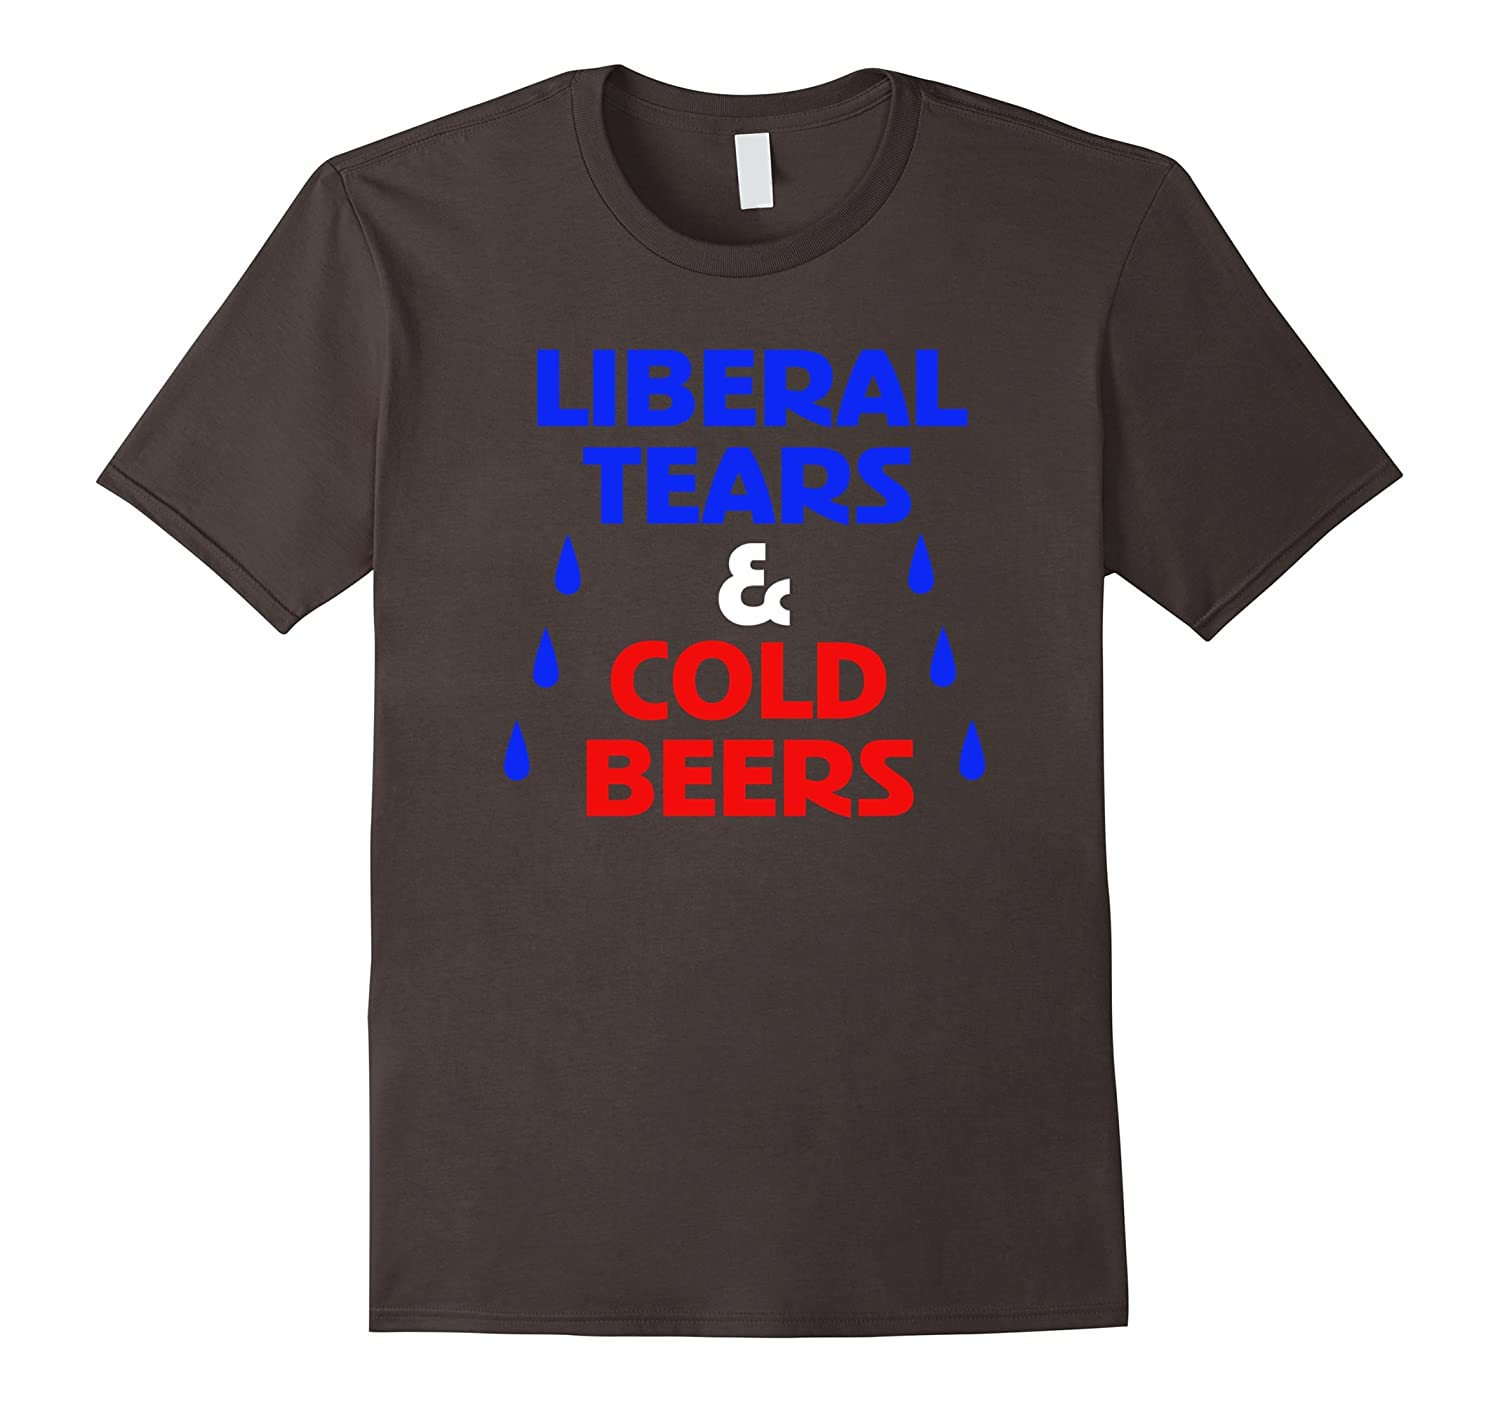 Liberal Tears  Cold Beers T Shirt Pro President elect Trump-RT